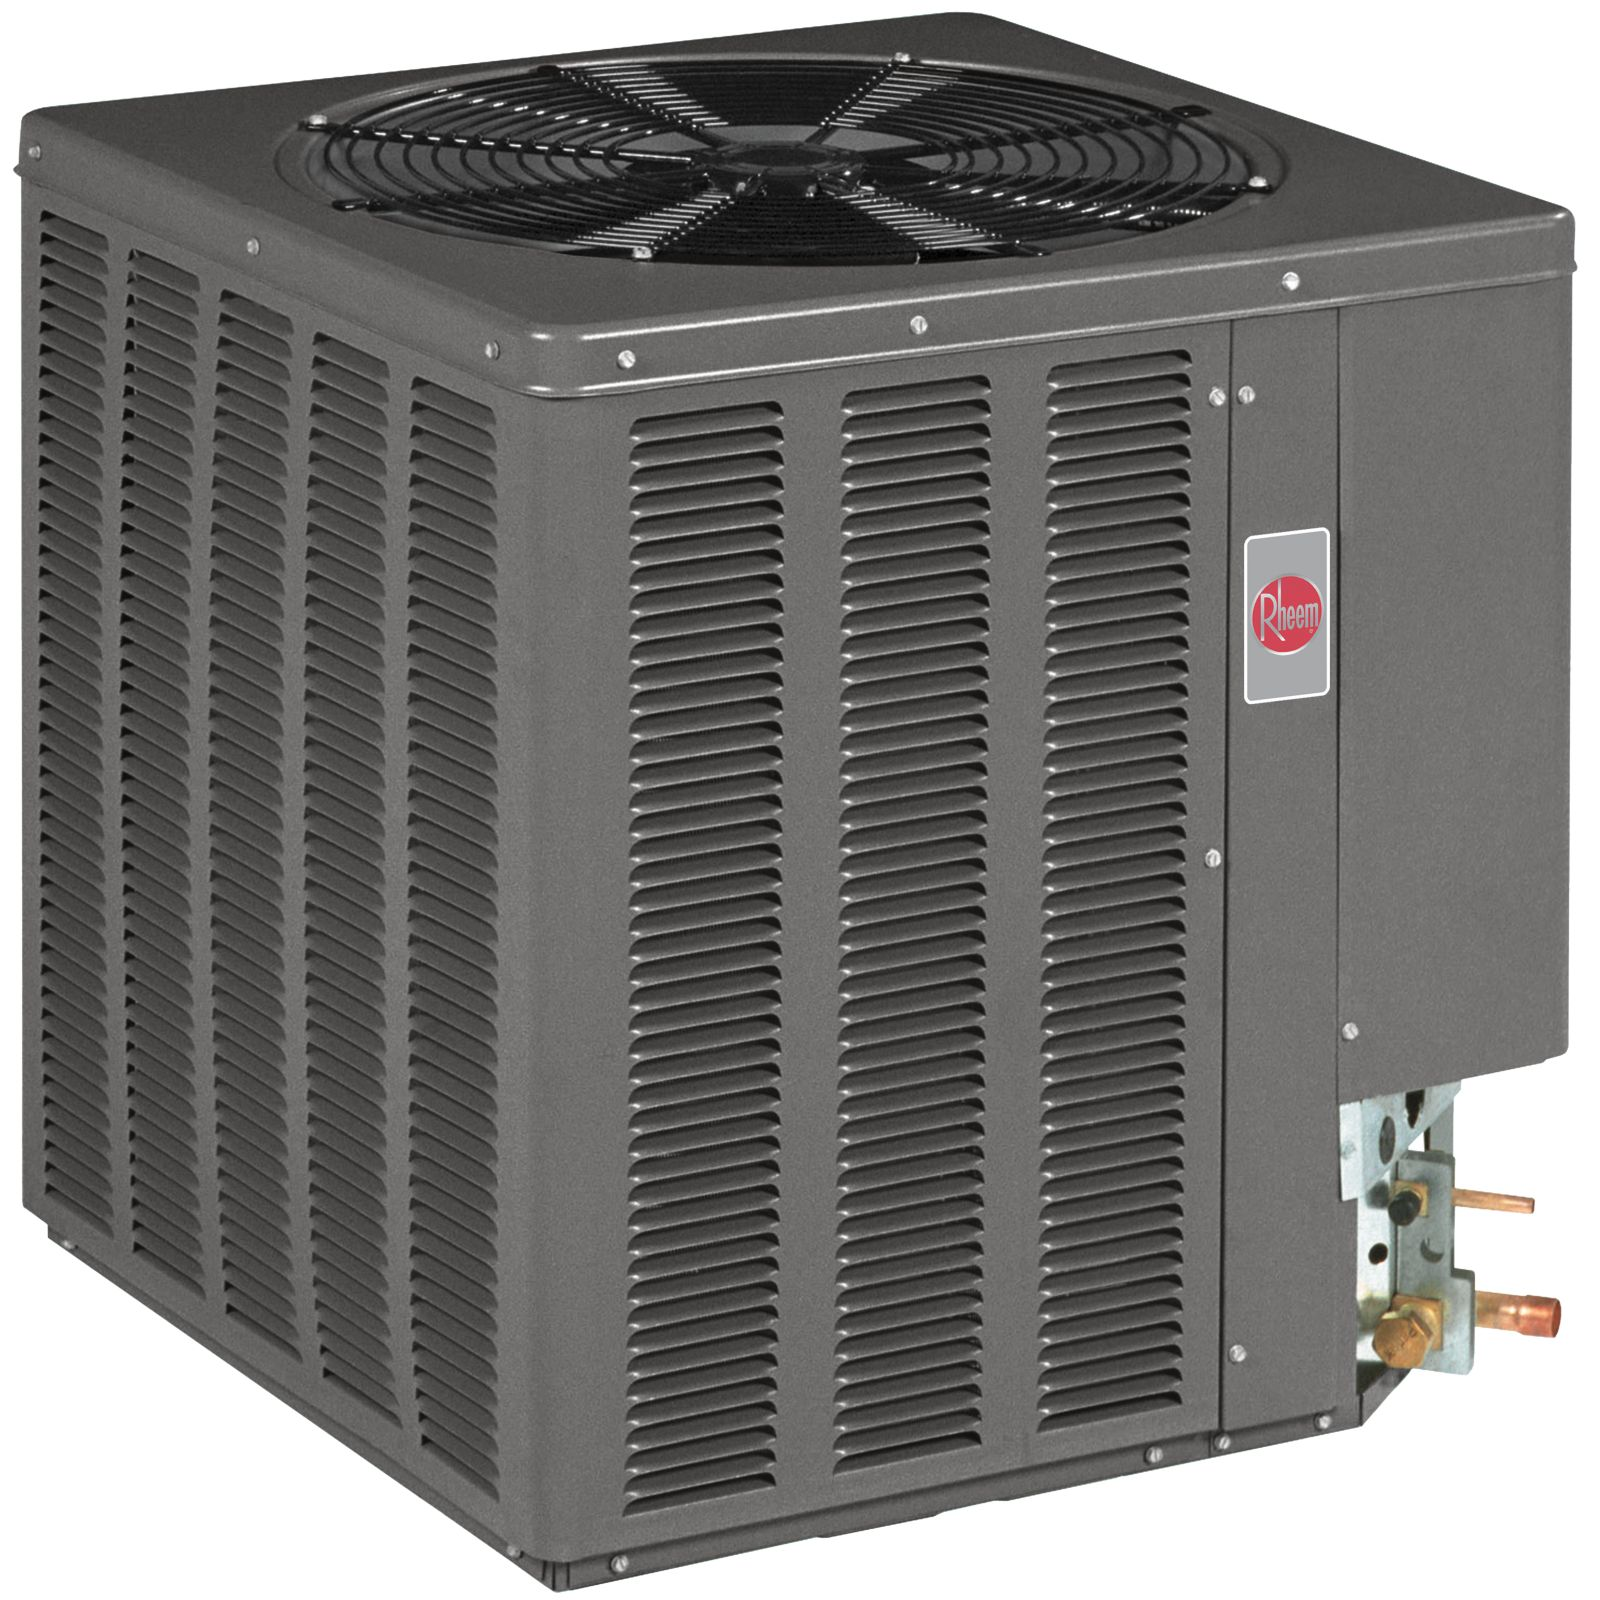 Rheem 14PJM30A01 - Value Series 2 1/2 Ton, 14 SEER, R410A Heat Pump